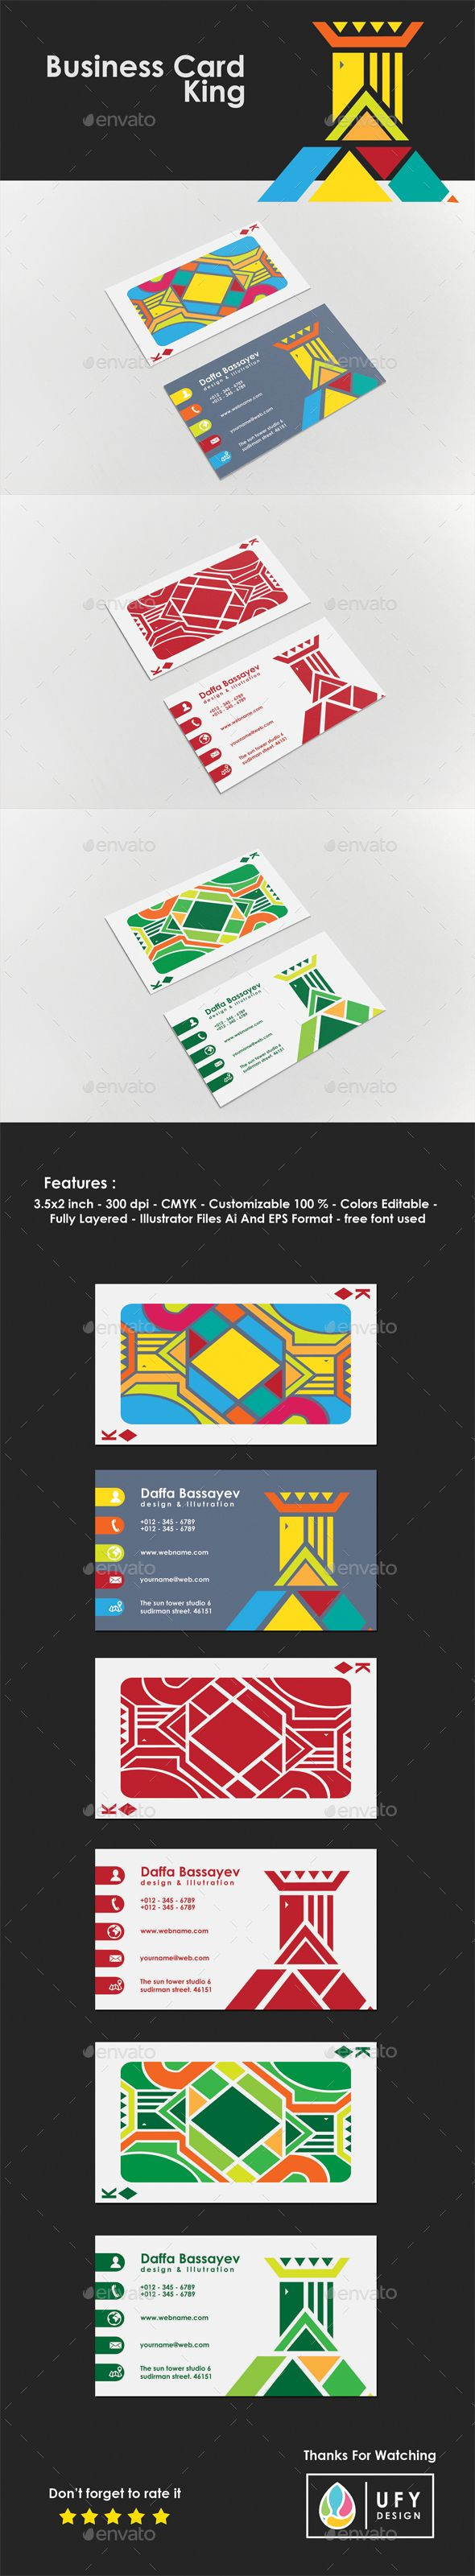 #Business #Card - King - Business Cards Print Templates Download here: https://graphicriver.net/item/business-card-king/19695068?ref=alena994